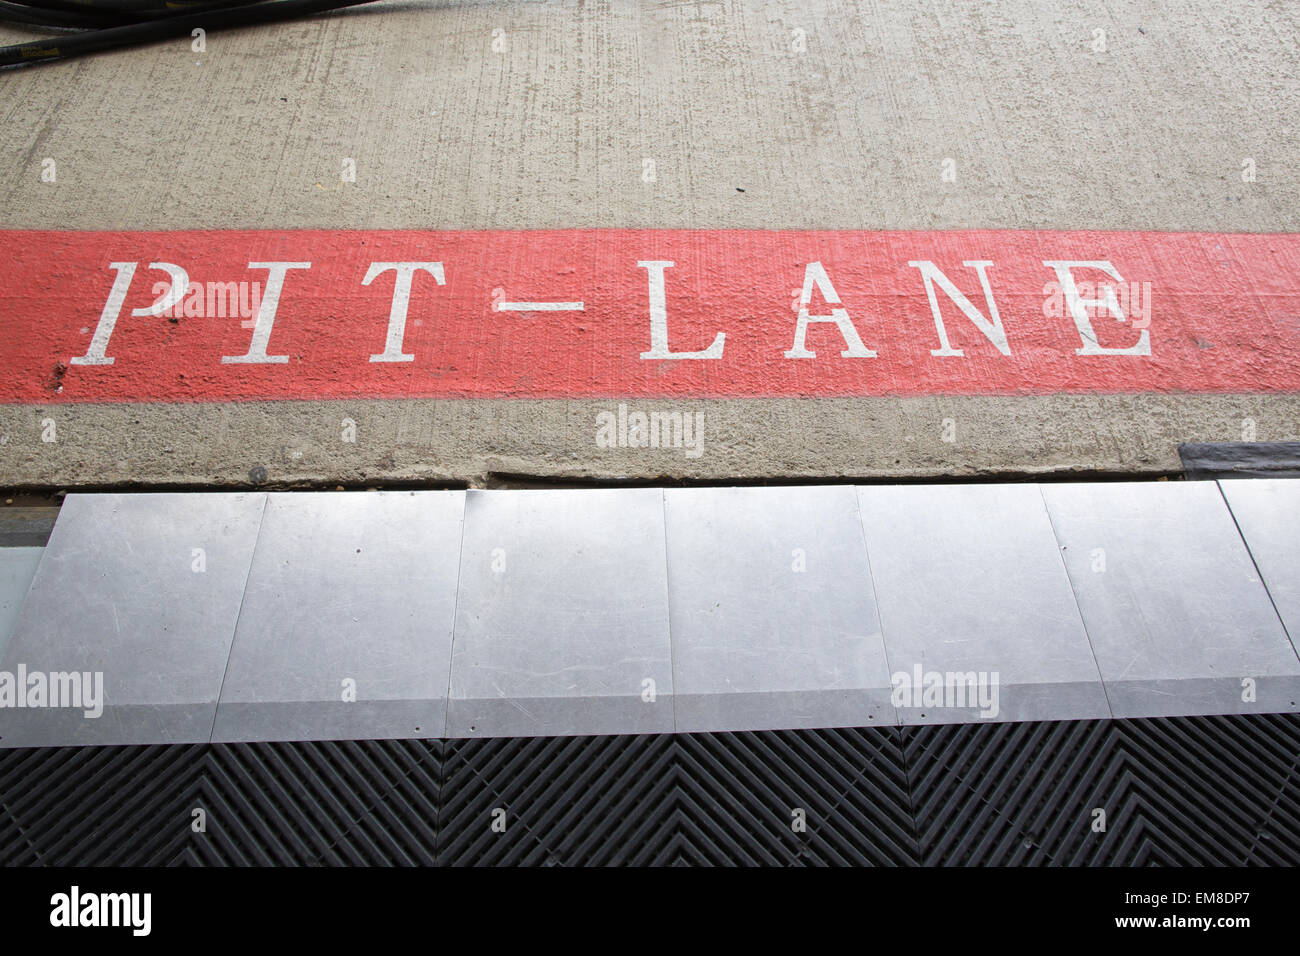 Pit Lane, Silverstone, motor racing circuit, Northamptonshire, England, UK - Stock Image